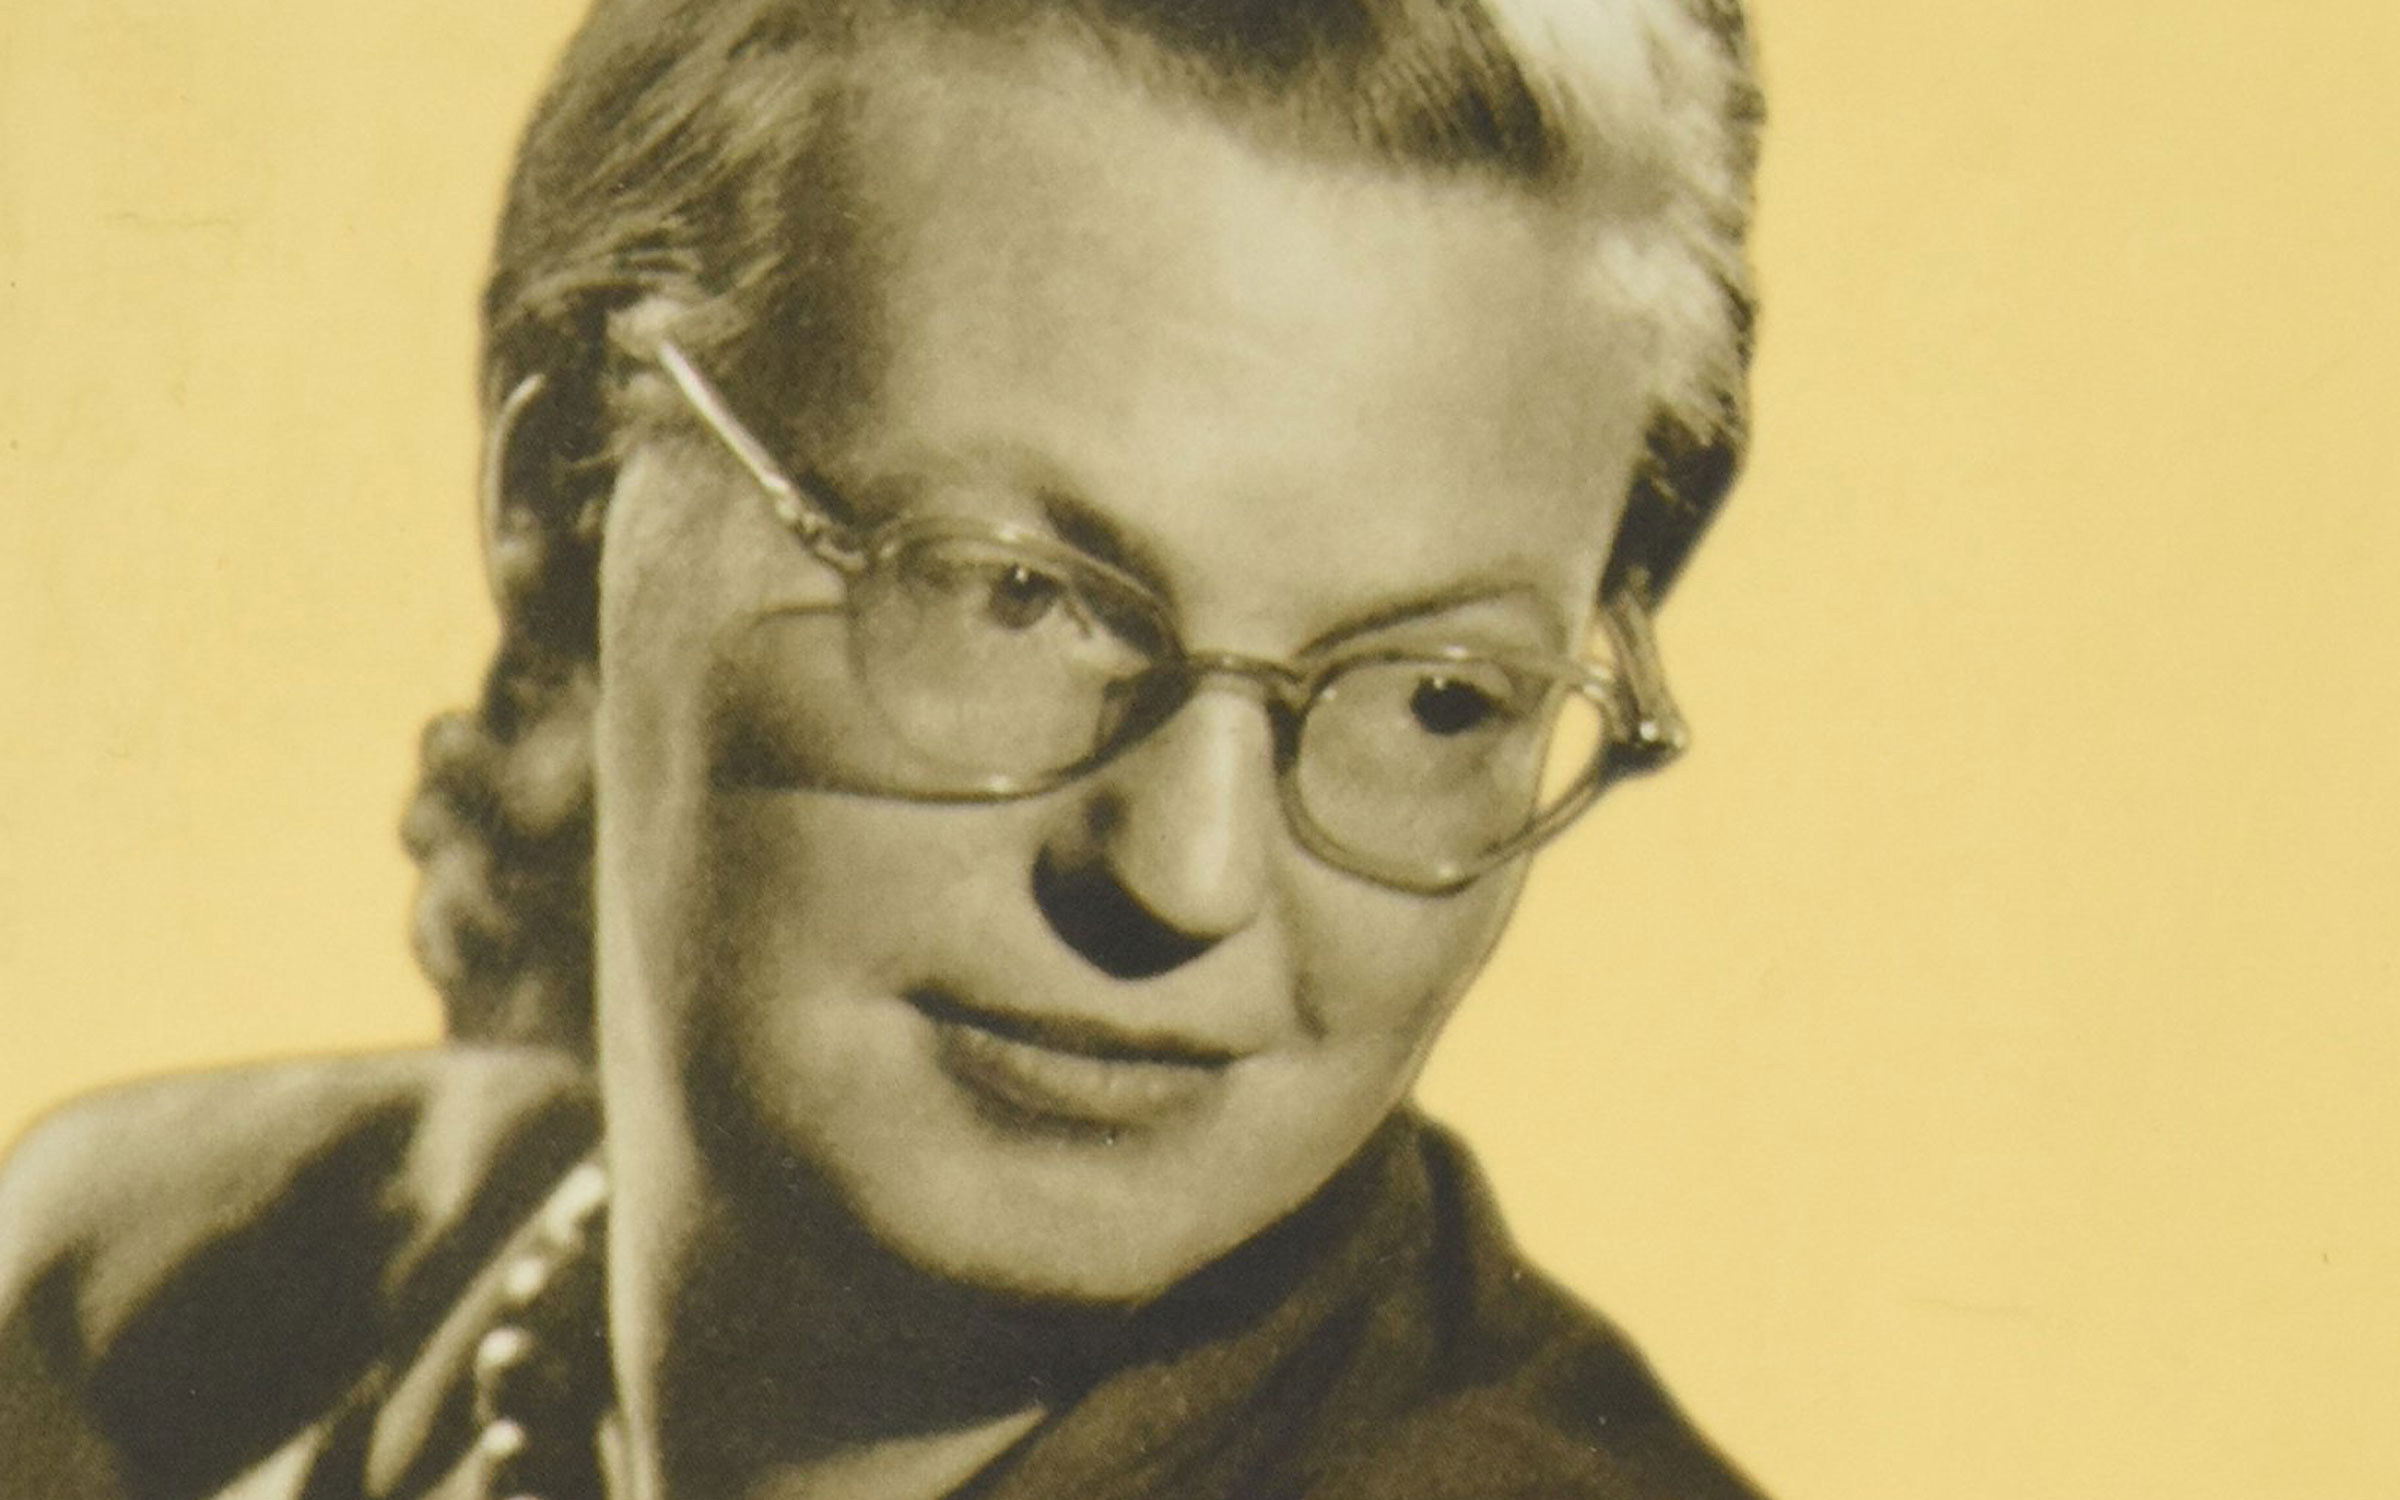 Shirley Jackson, a white woman with her blond hair in a bun and wearing glasses, looks downward in front of a yellow background